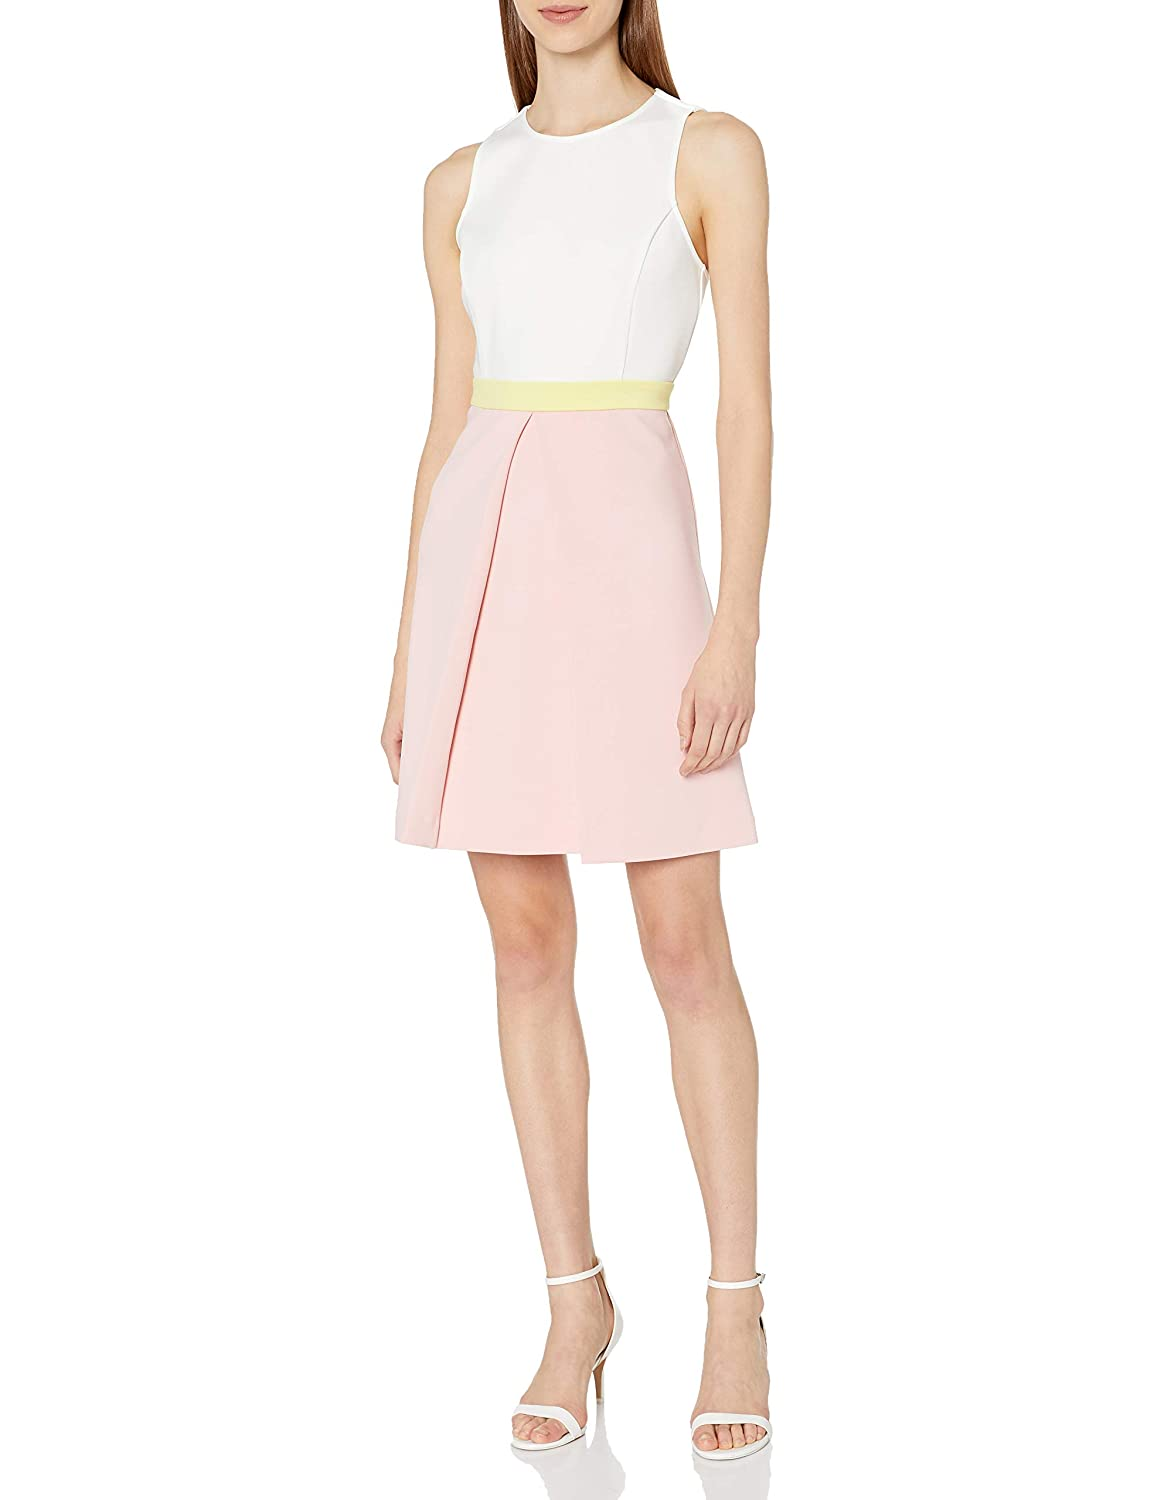 Erin erin fetherston Womens Colorblock Callie Crepe Knit Dress